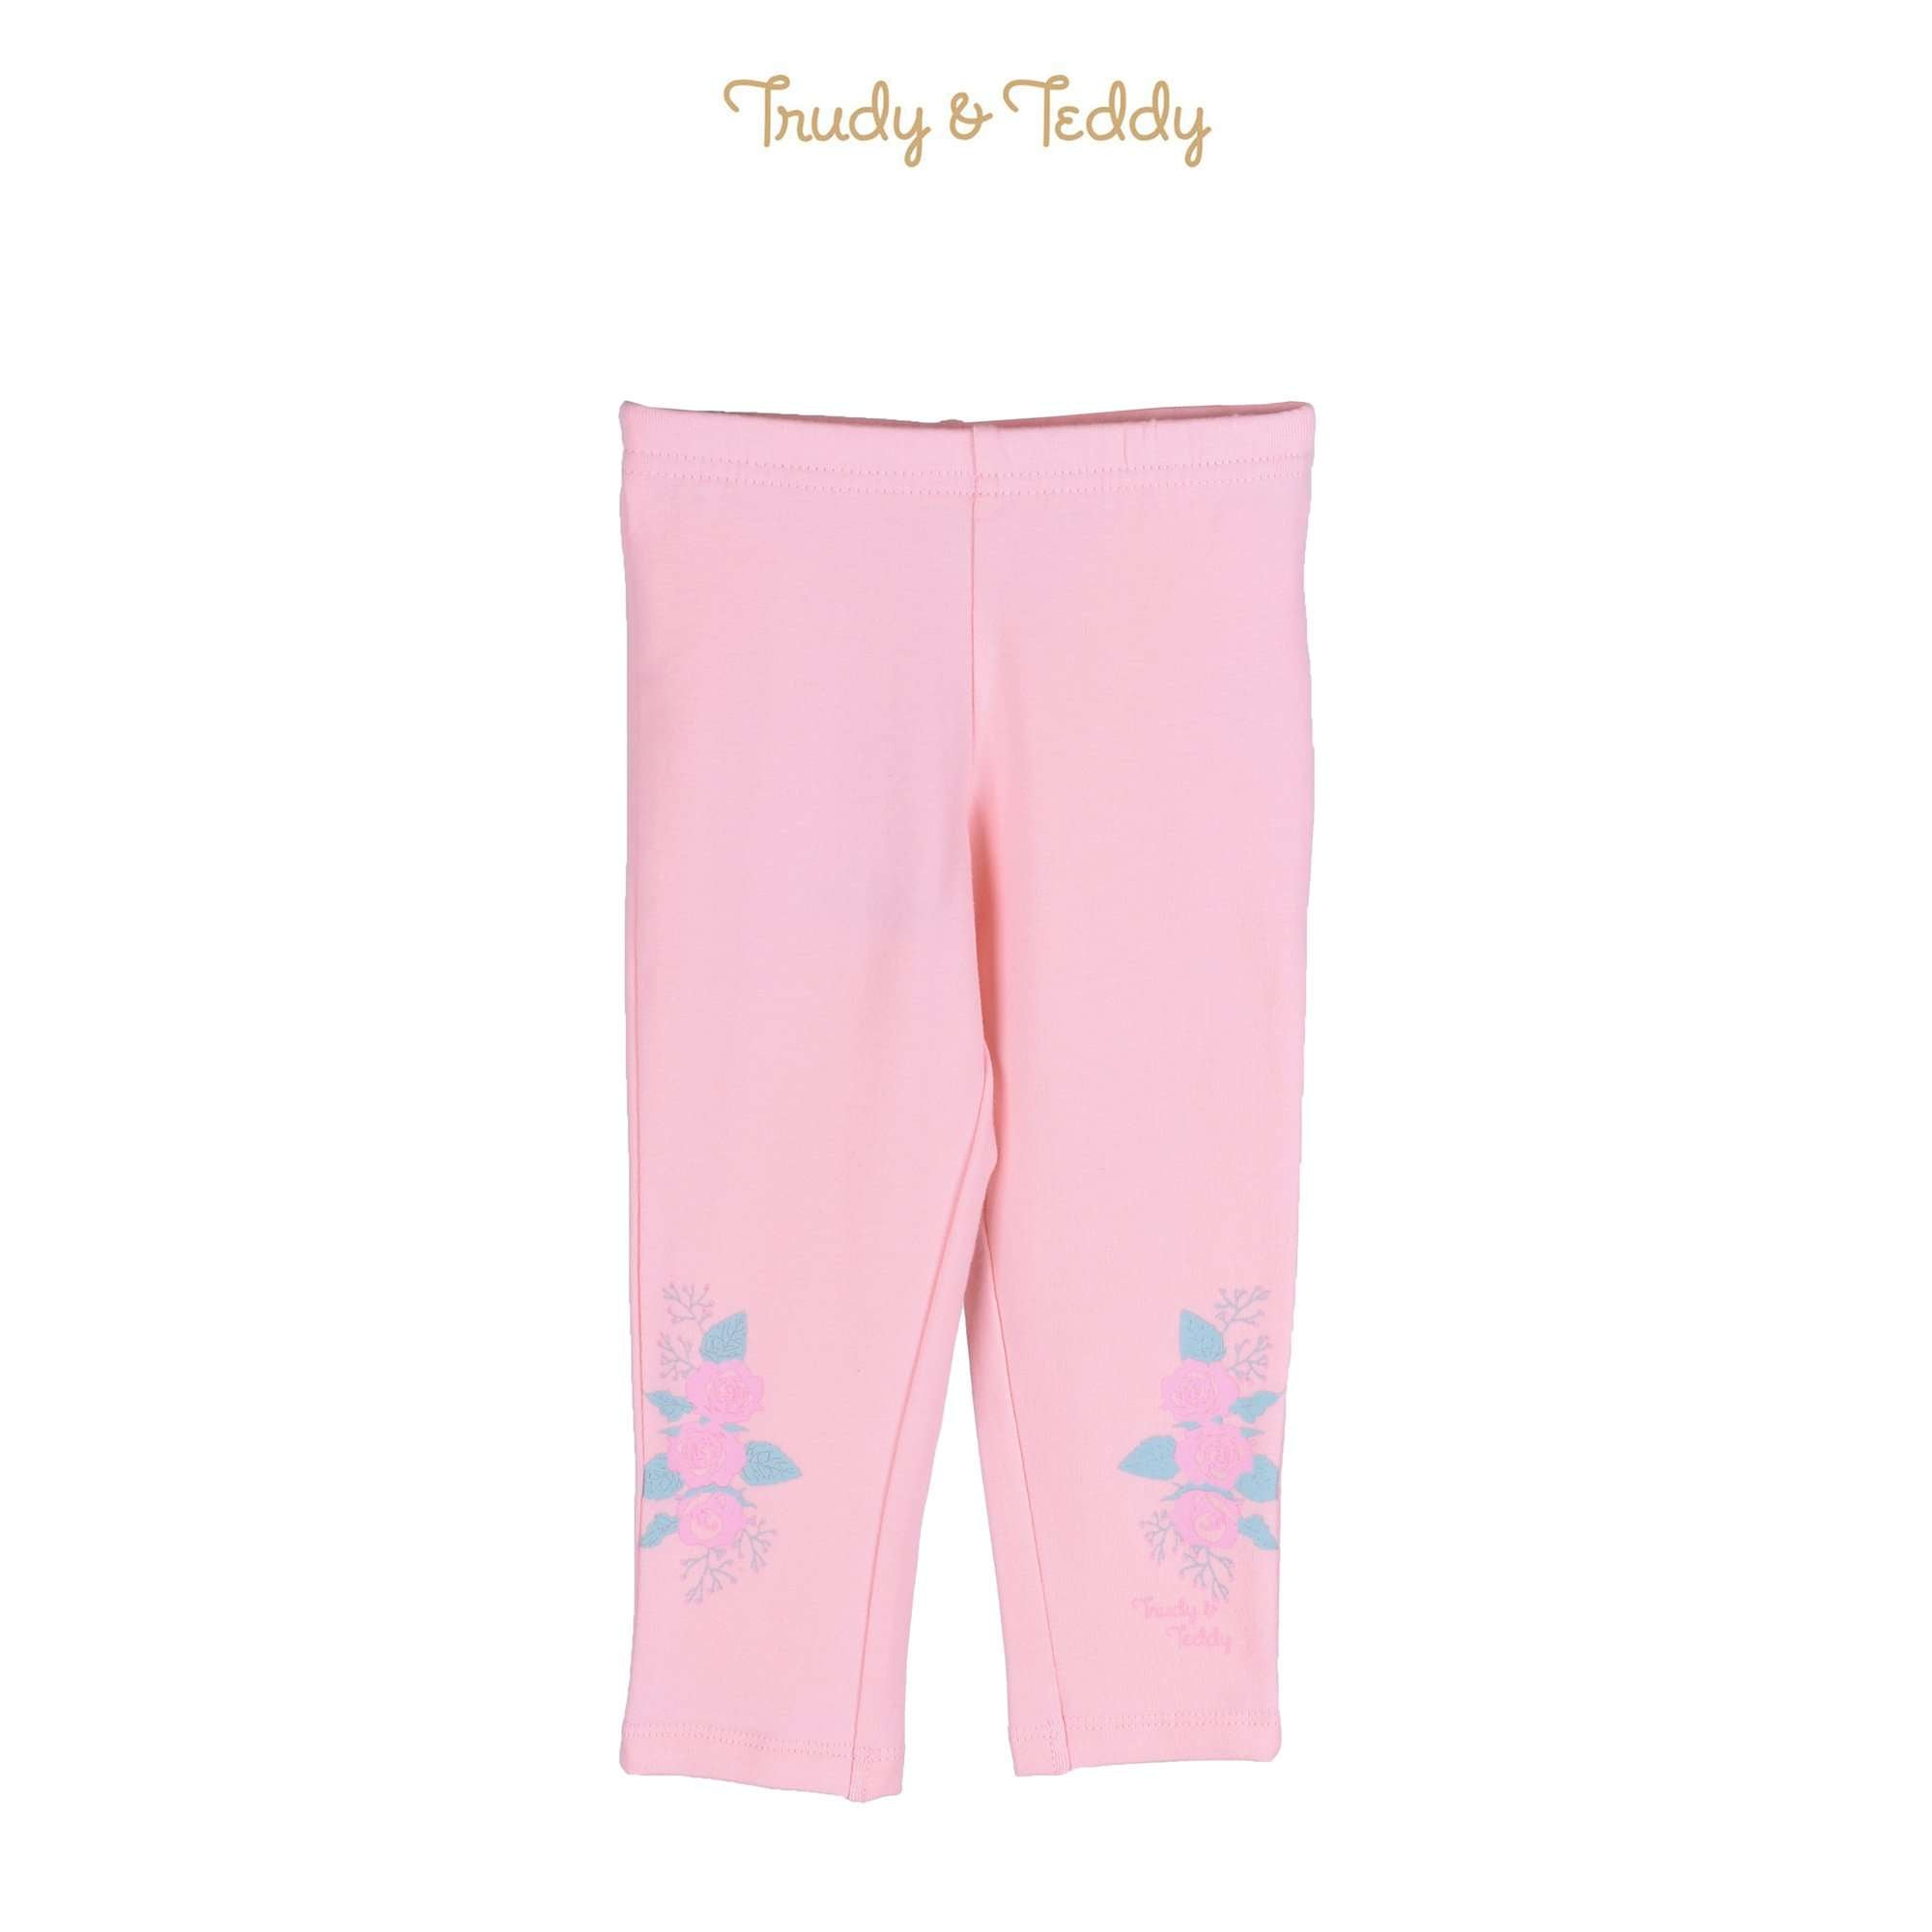 Trudy & Teddy Toddler Girl Long Pants 825047-283 : Buy Trudy & Teddy online at CMG.MY